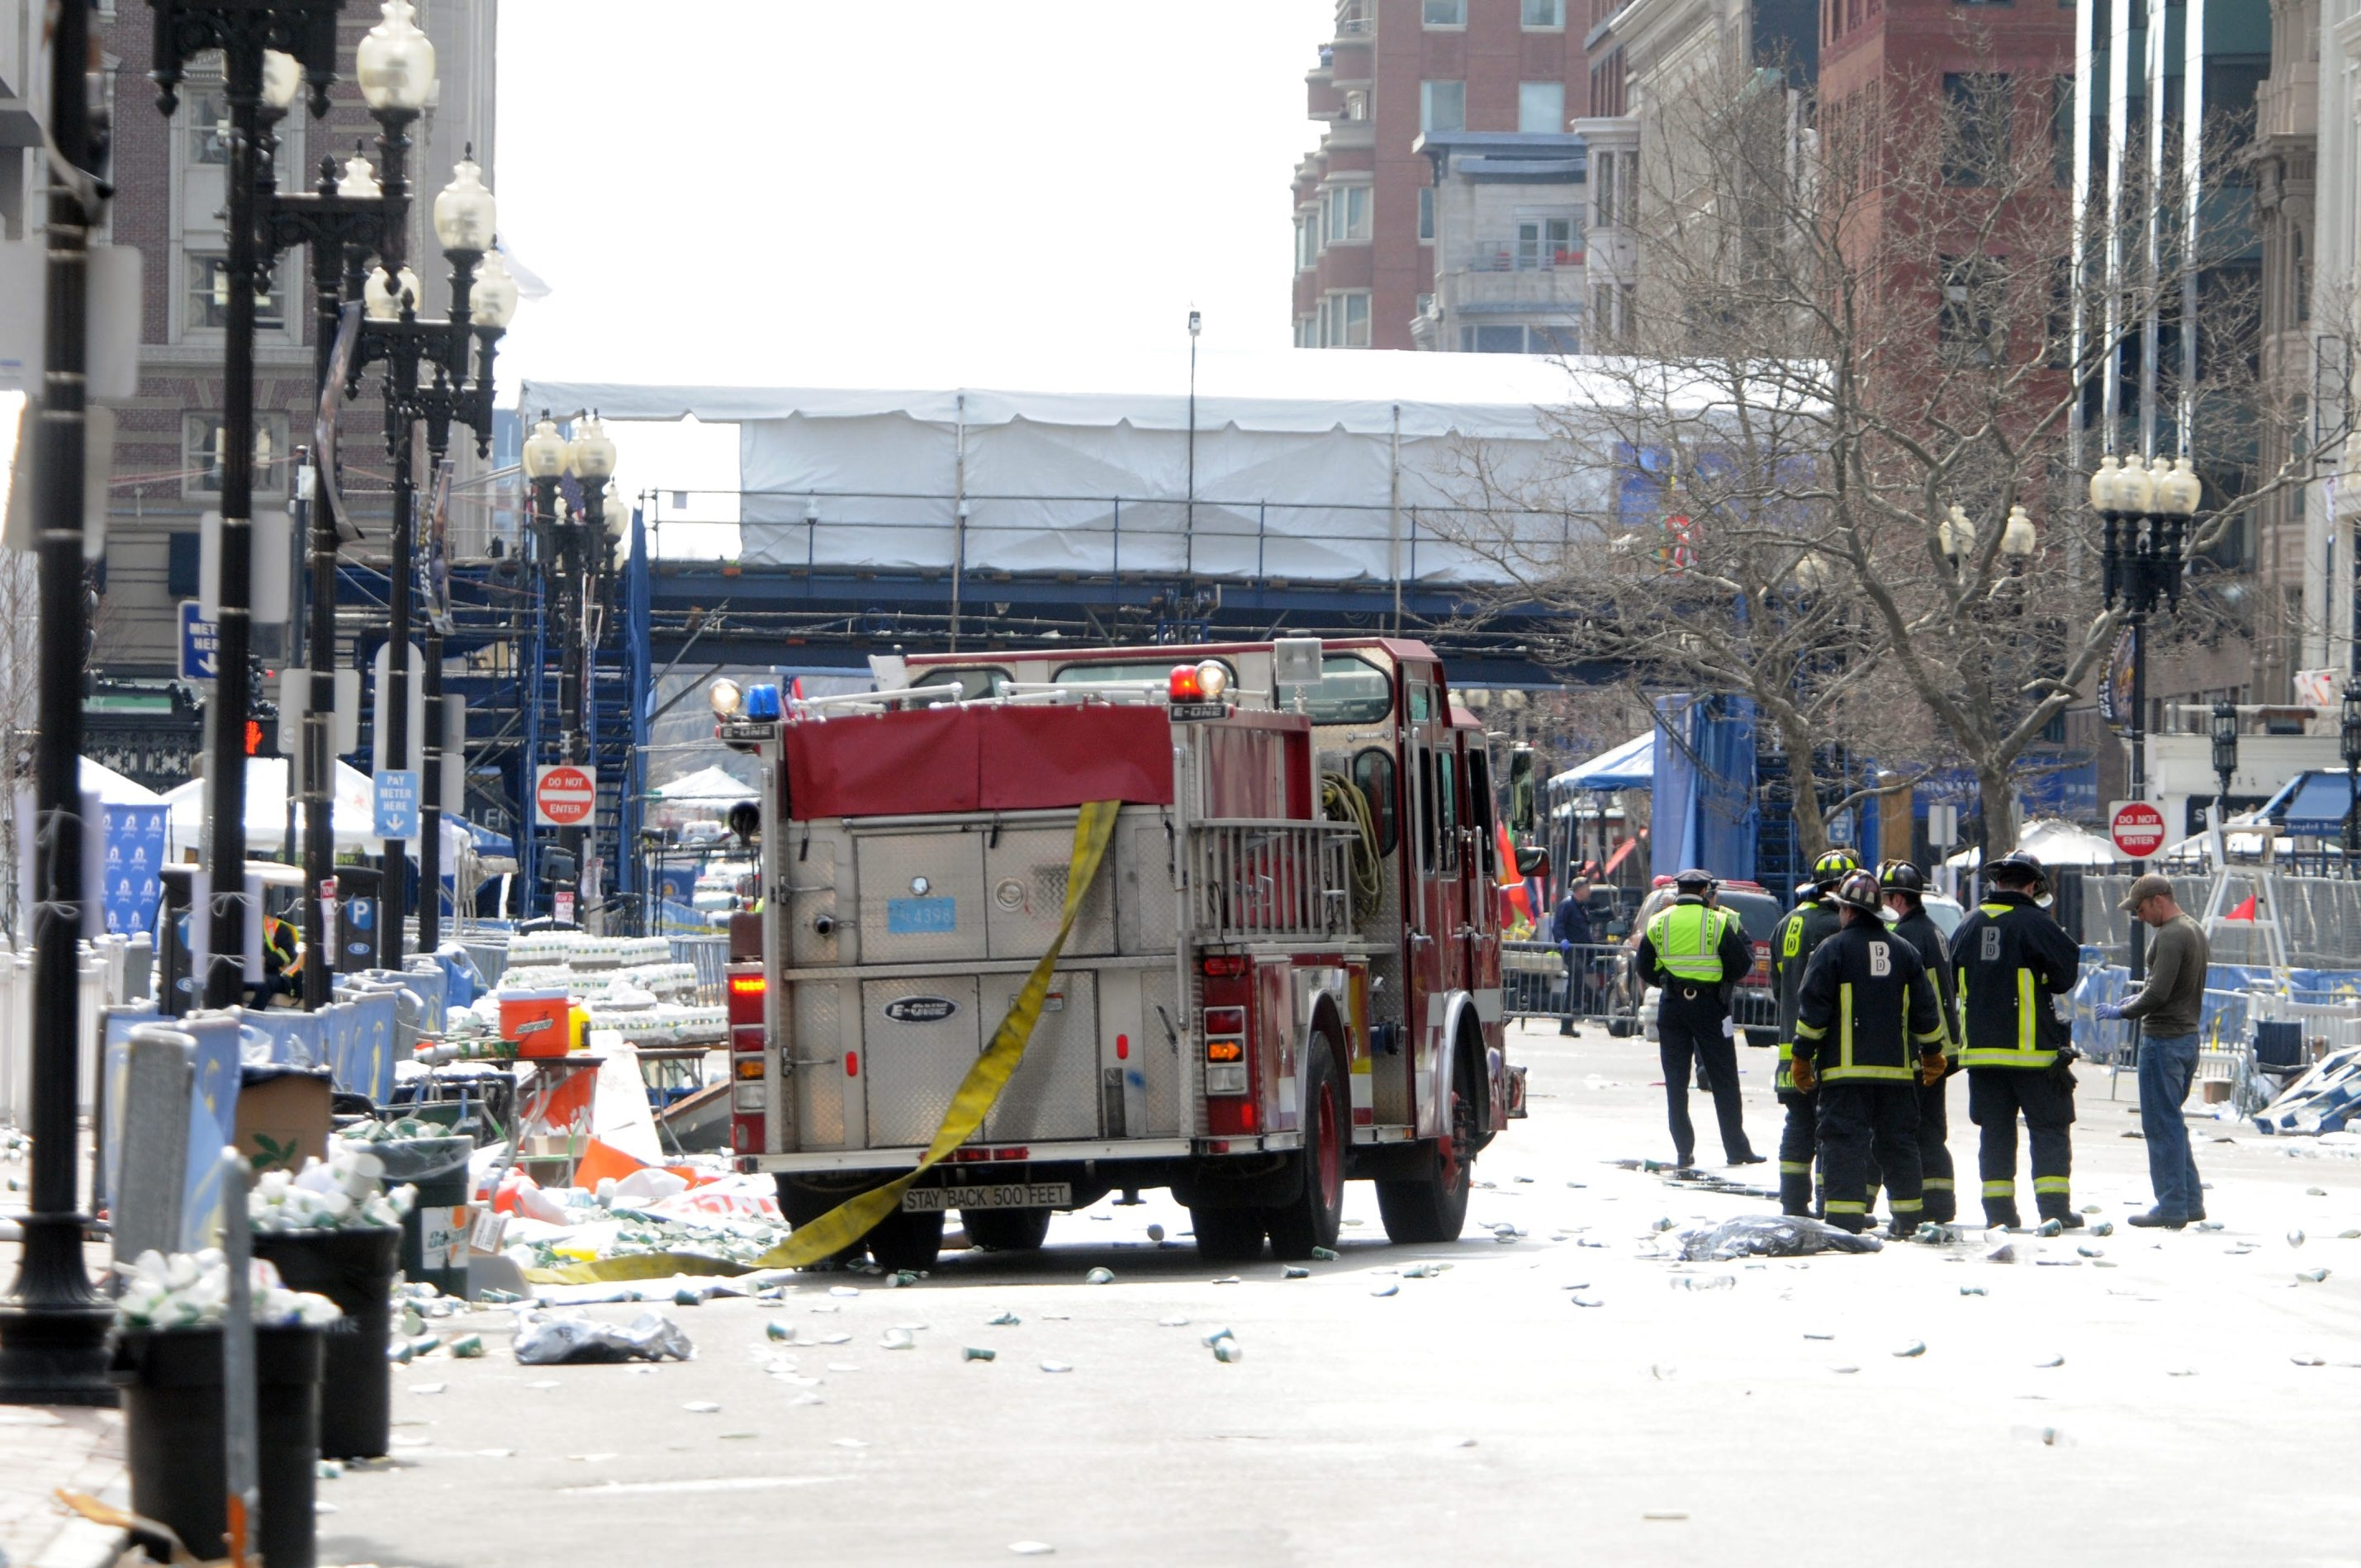 Firefighters were on duty on Boylston Street, near the finish line, after two bombs exploded during last April's Boston Marathon.